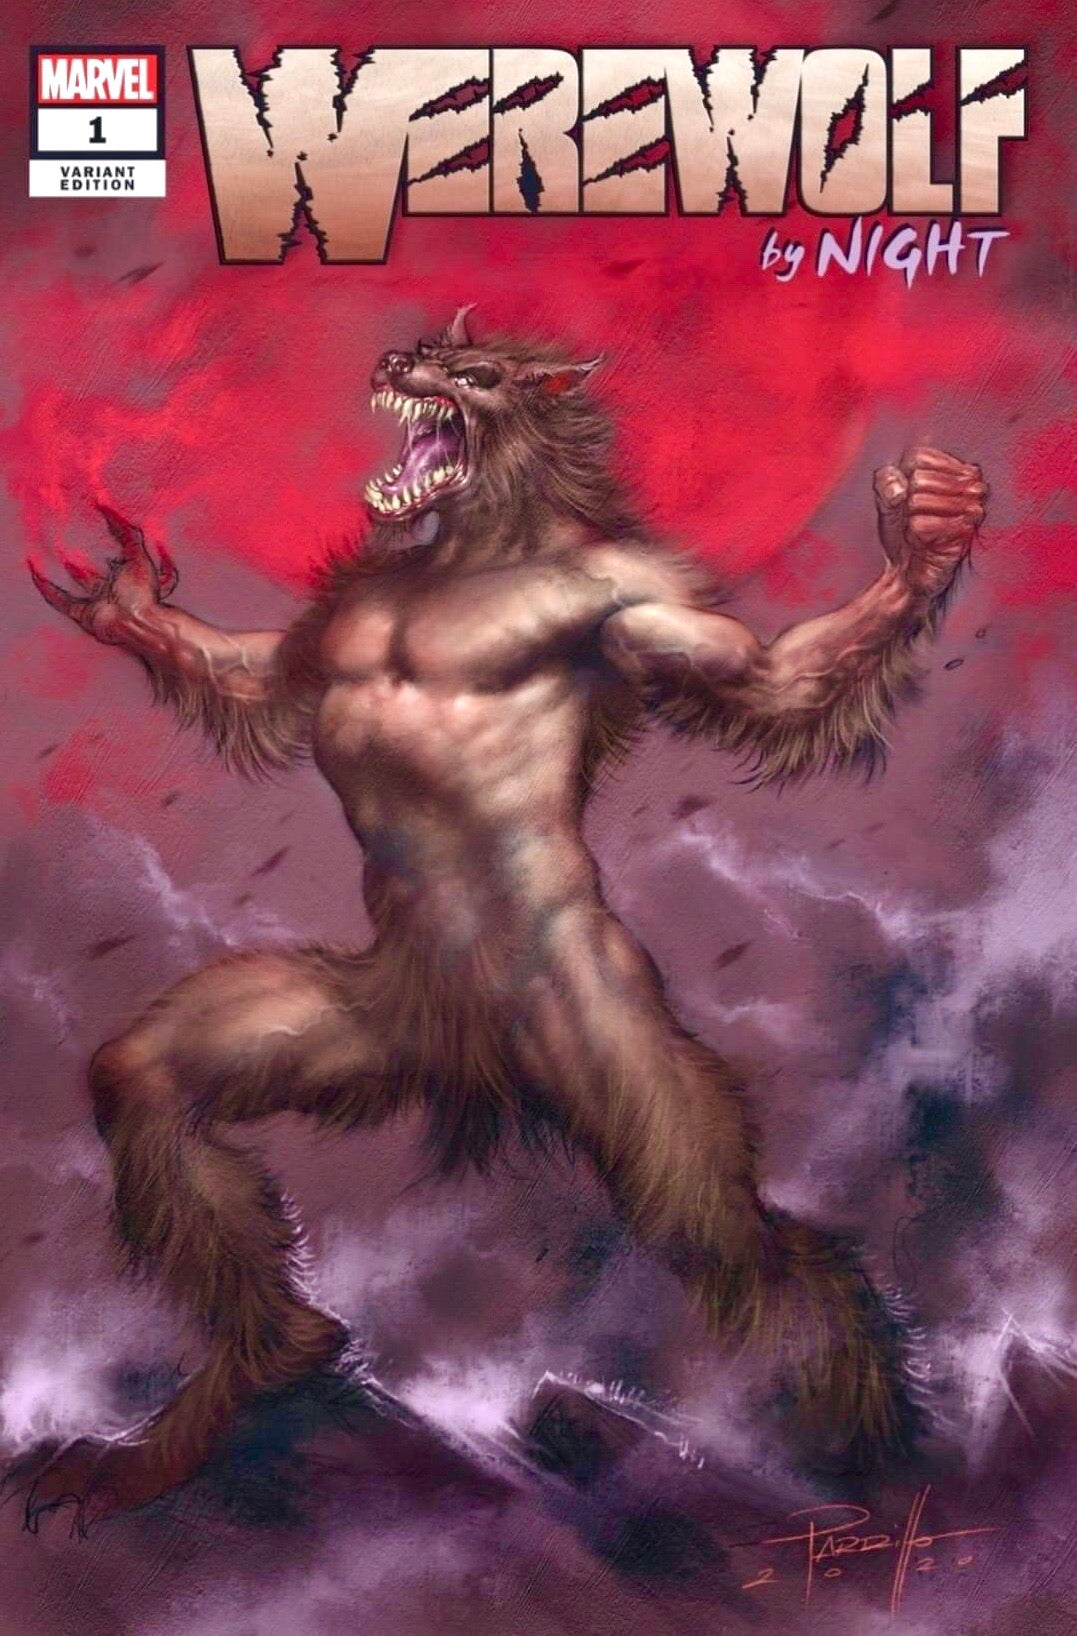 WEREWOLF BY NIGHT #1 LUCIO PARRILLO CK Exclusive Trade Dress Pre-Sale